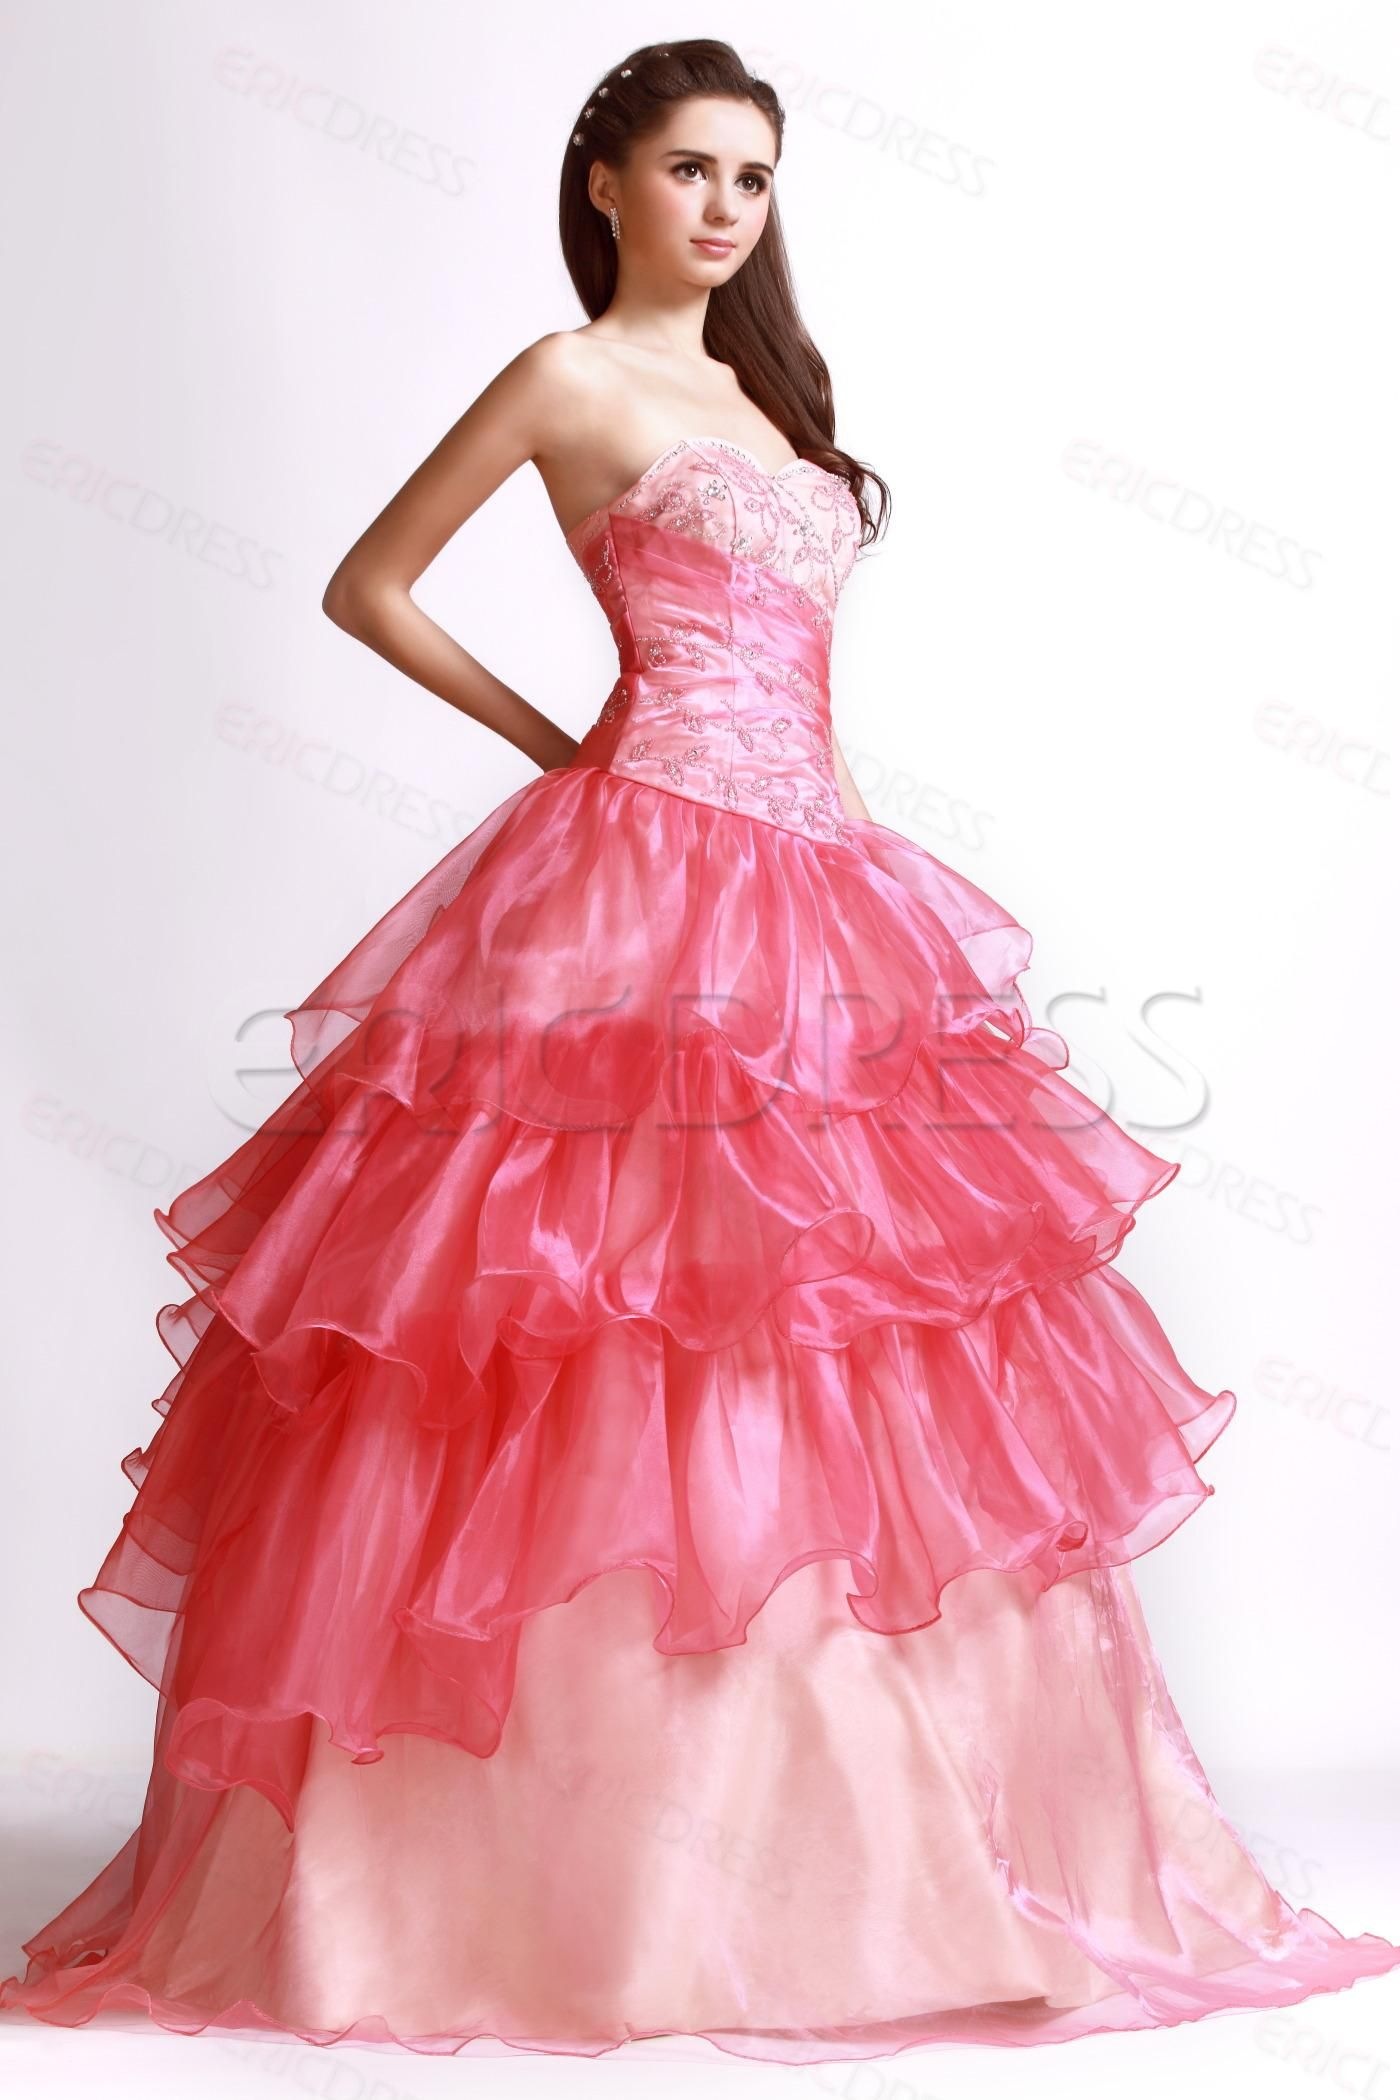 New style ball gown floorlength sweetheart yuliaus